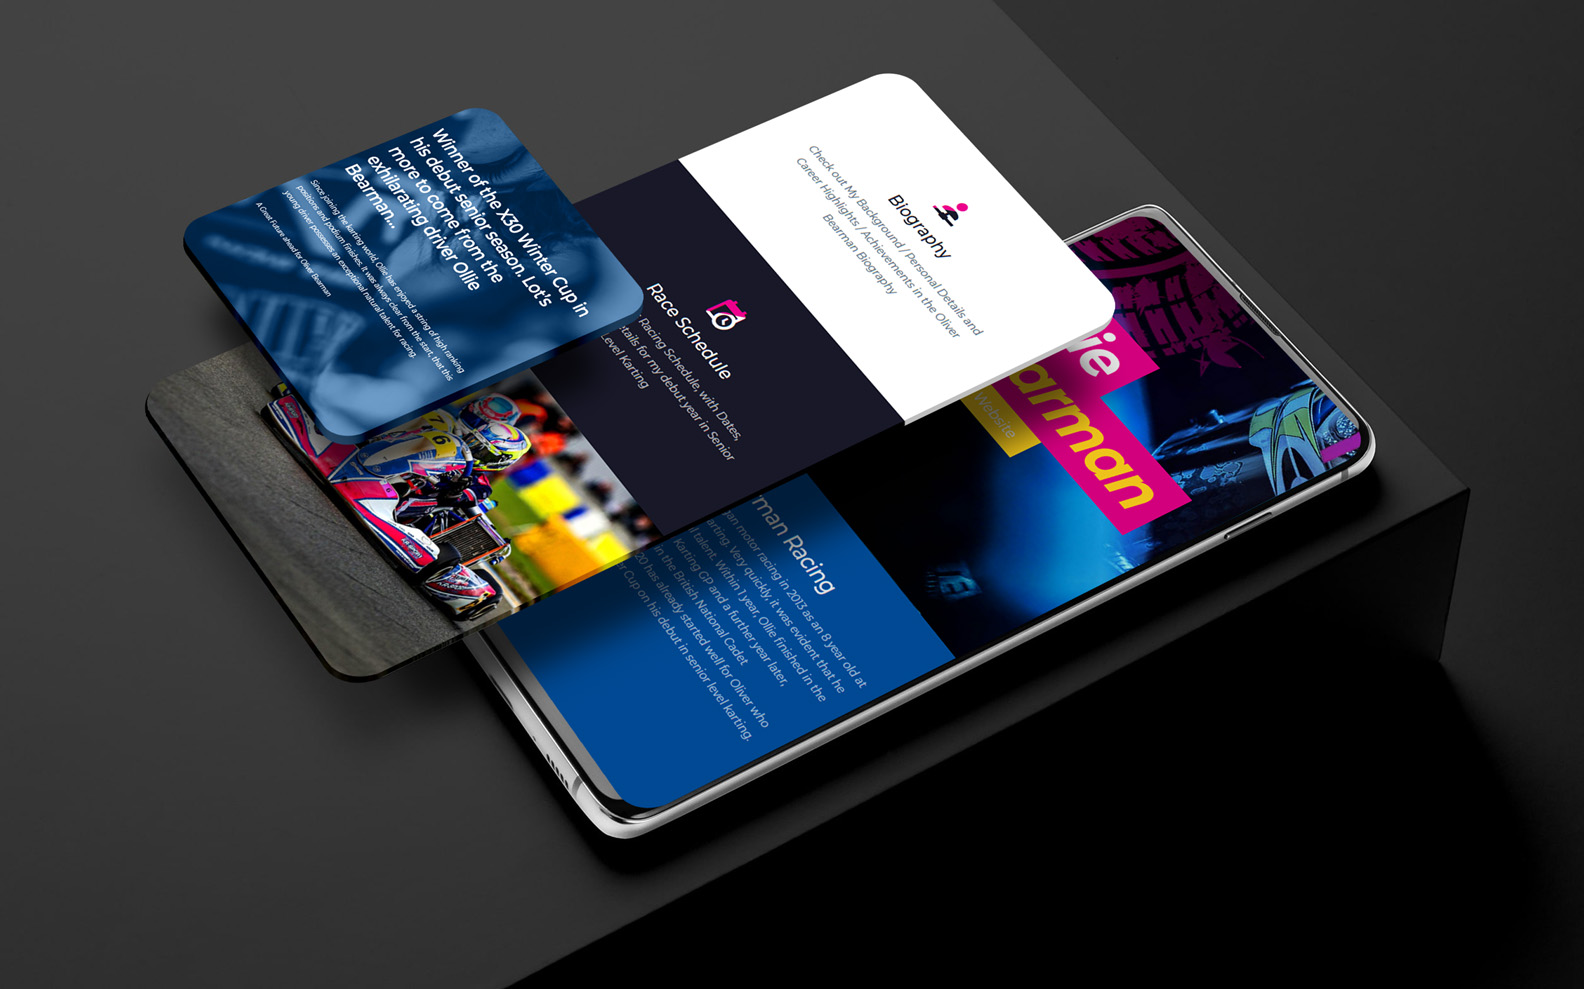 Interactive Mobile Friendly Design with Interactive Features